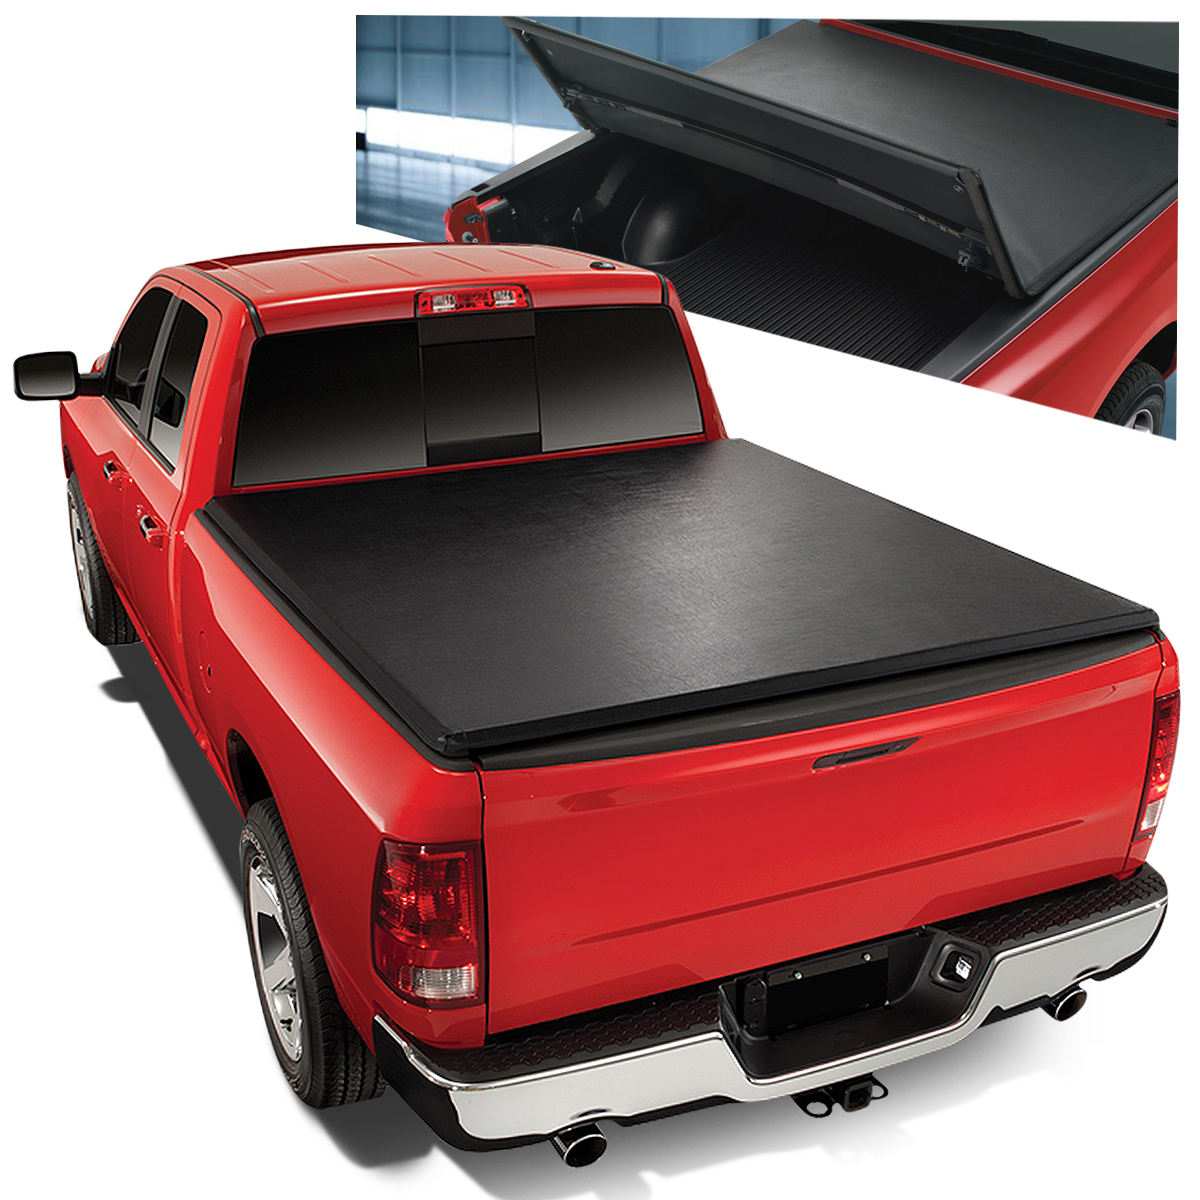 Truck Bed Accessories Tonneau Cover Soft Tri Fold For Ram 1500 2500 3500 Pickup Truck 6 5ft Short Bed Auto Parts And Vehicles